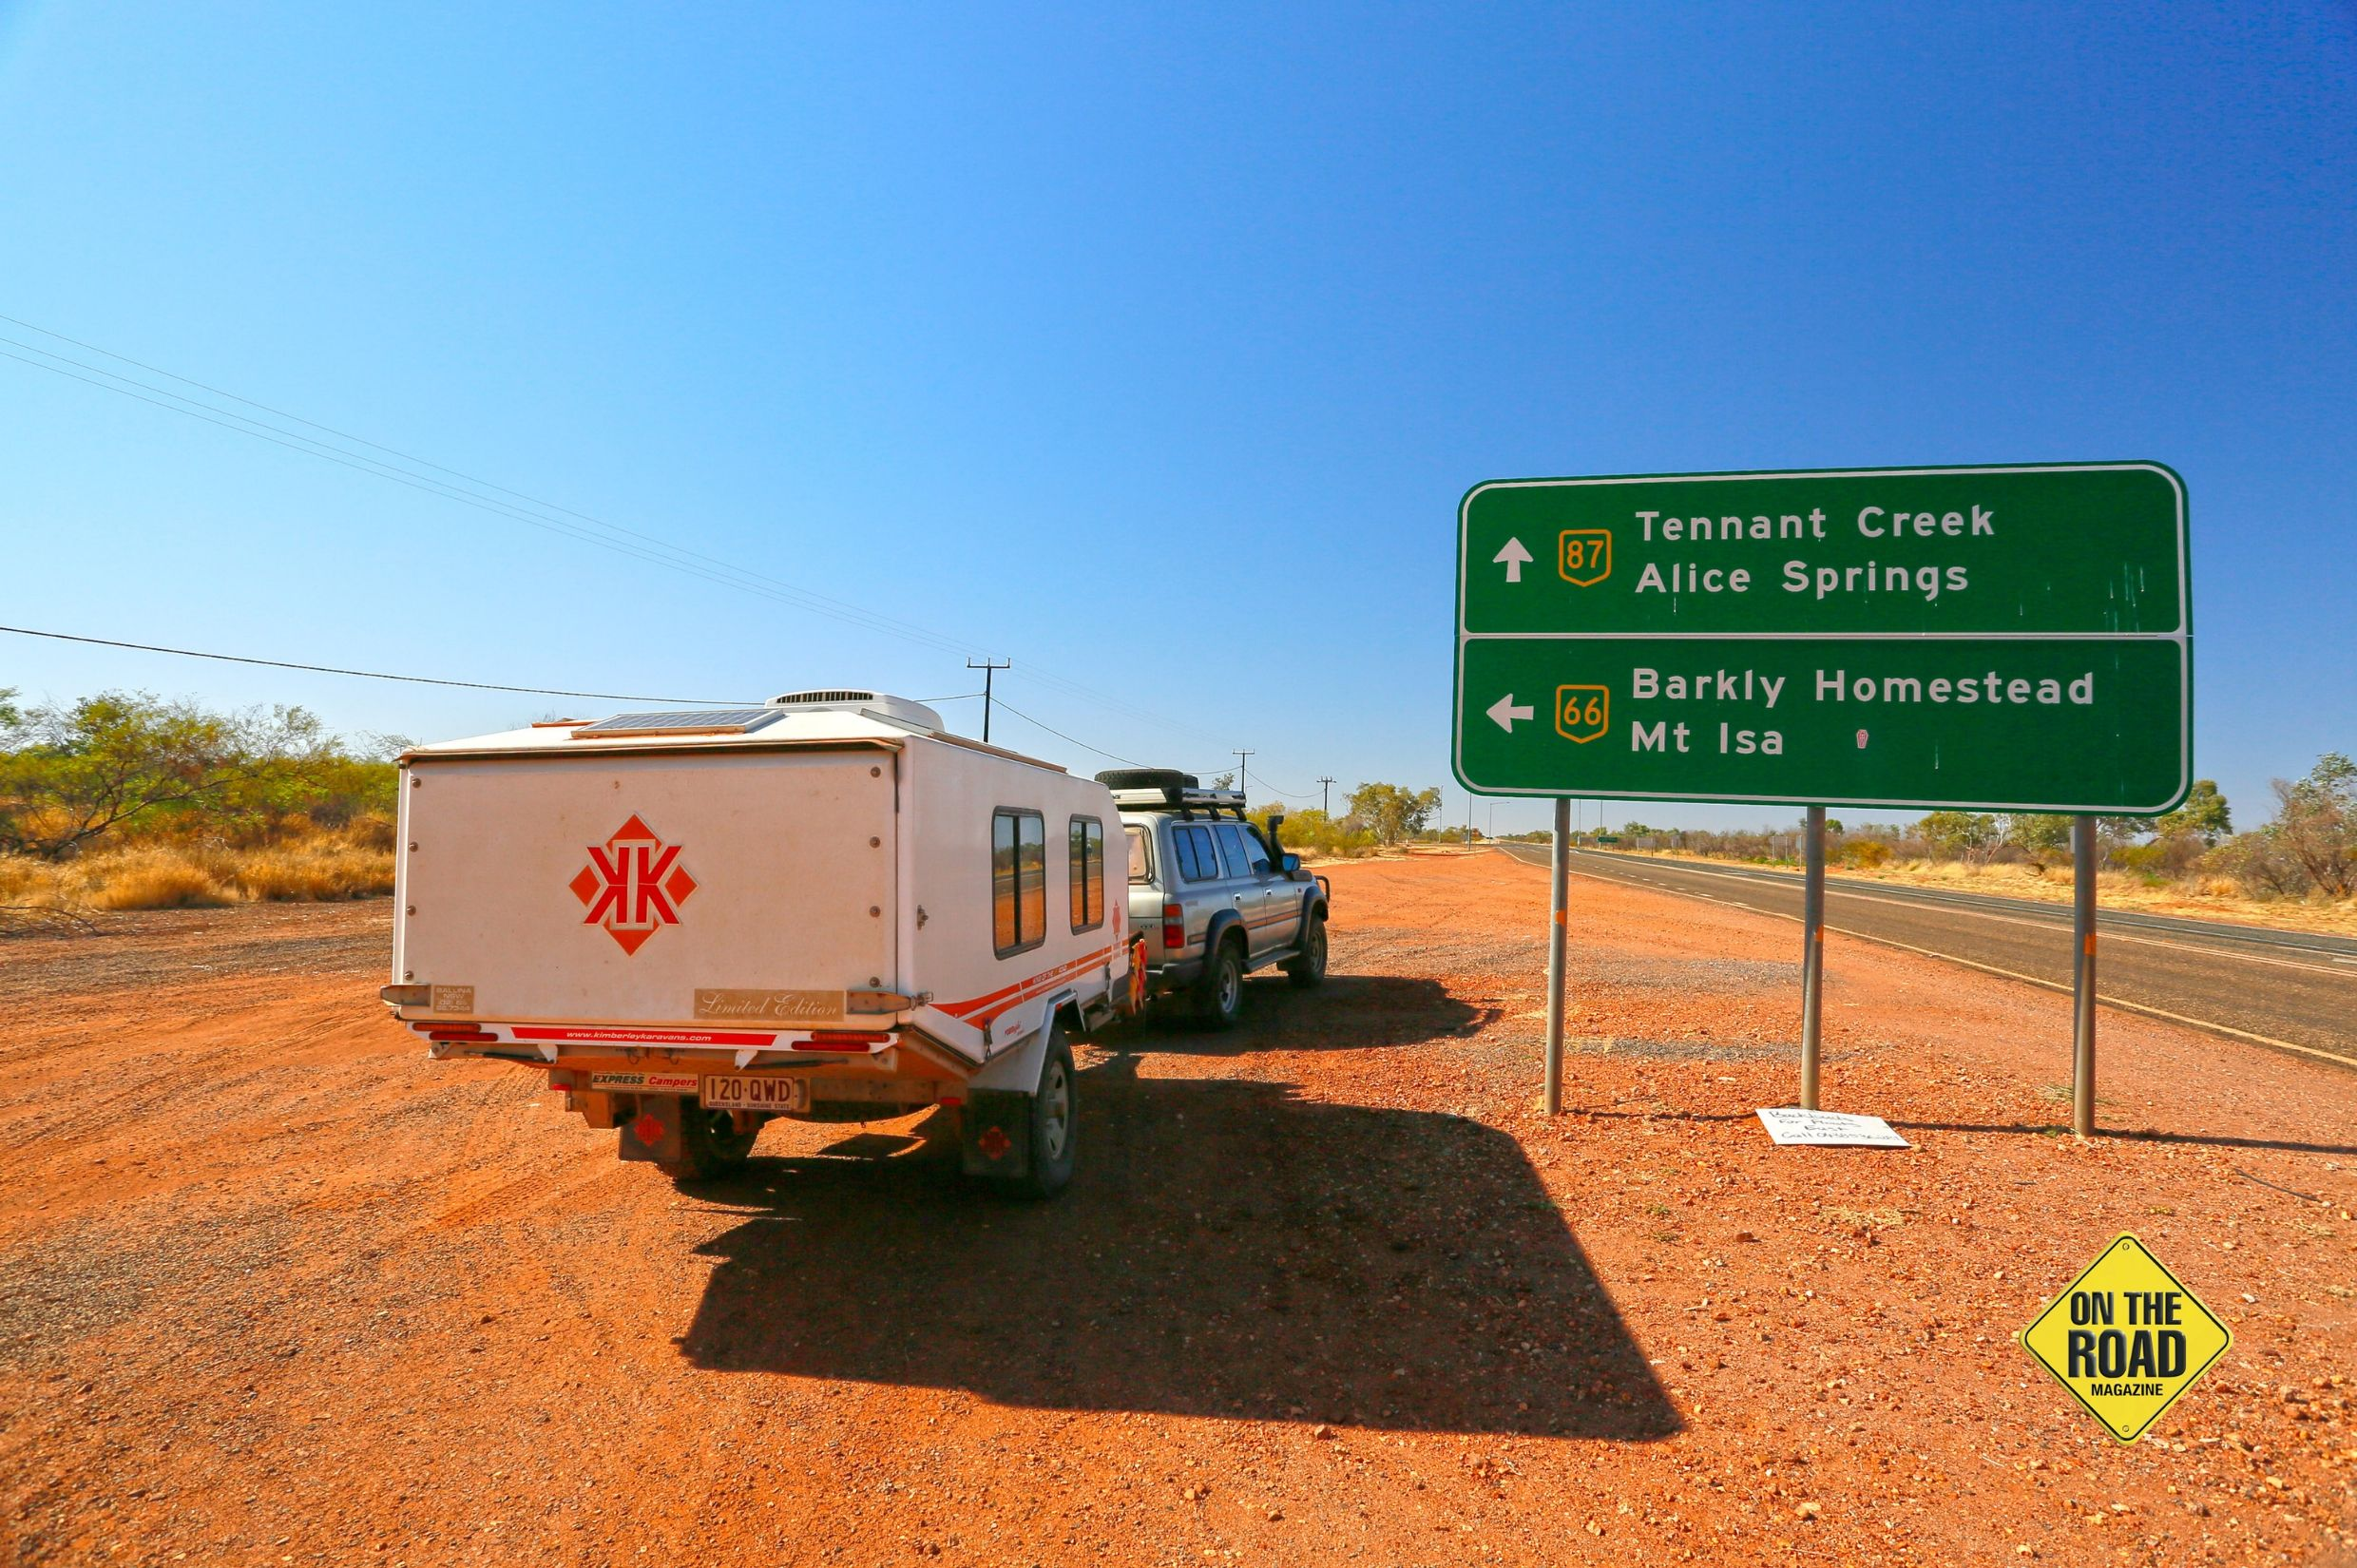 About to head east on the Barkly Highway towards Mt Isa